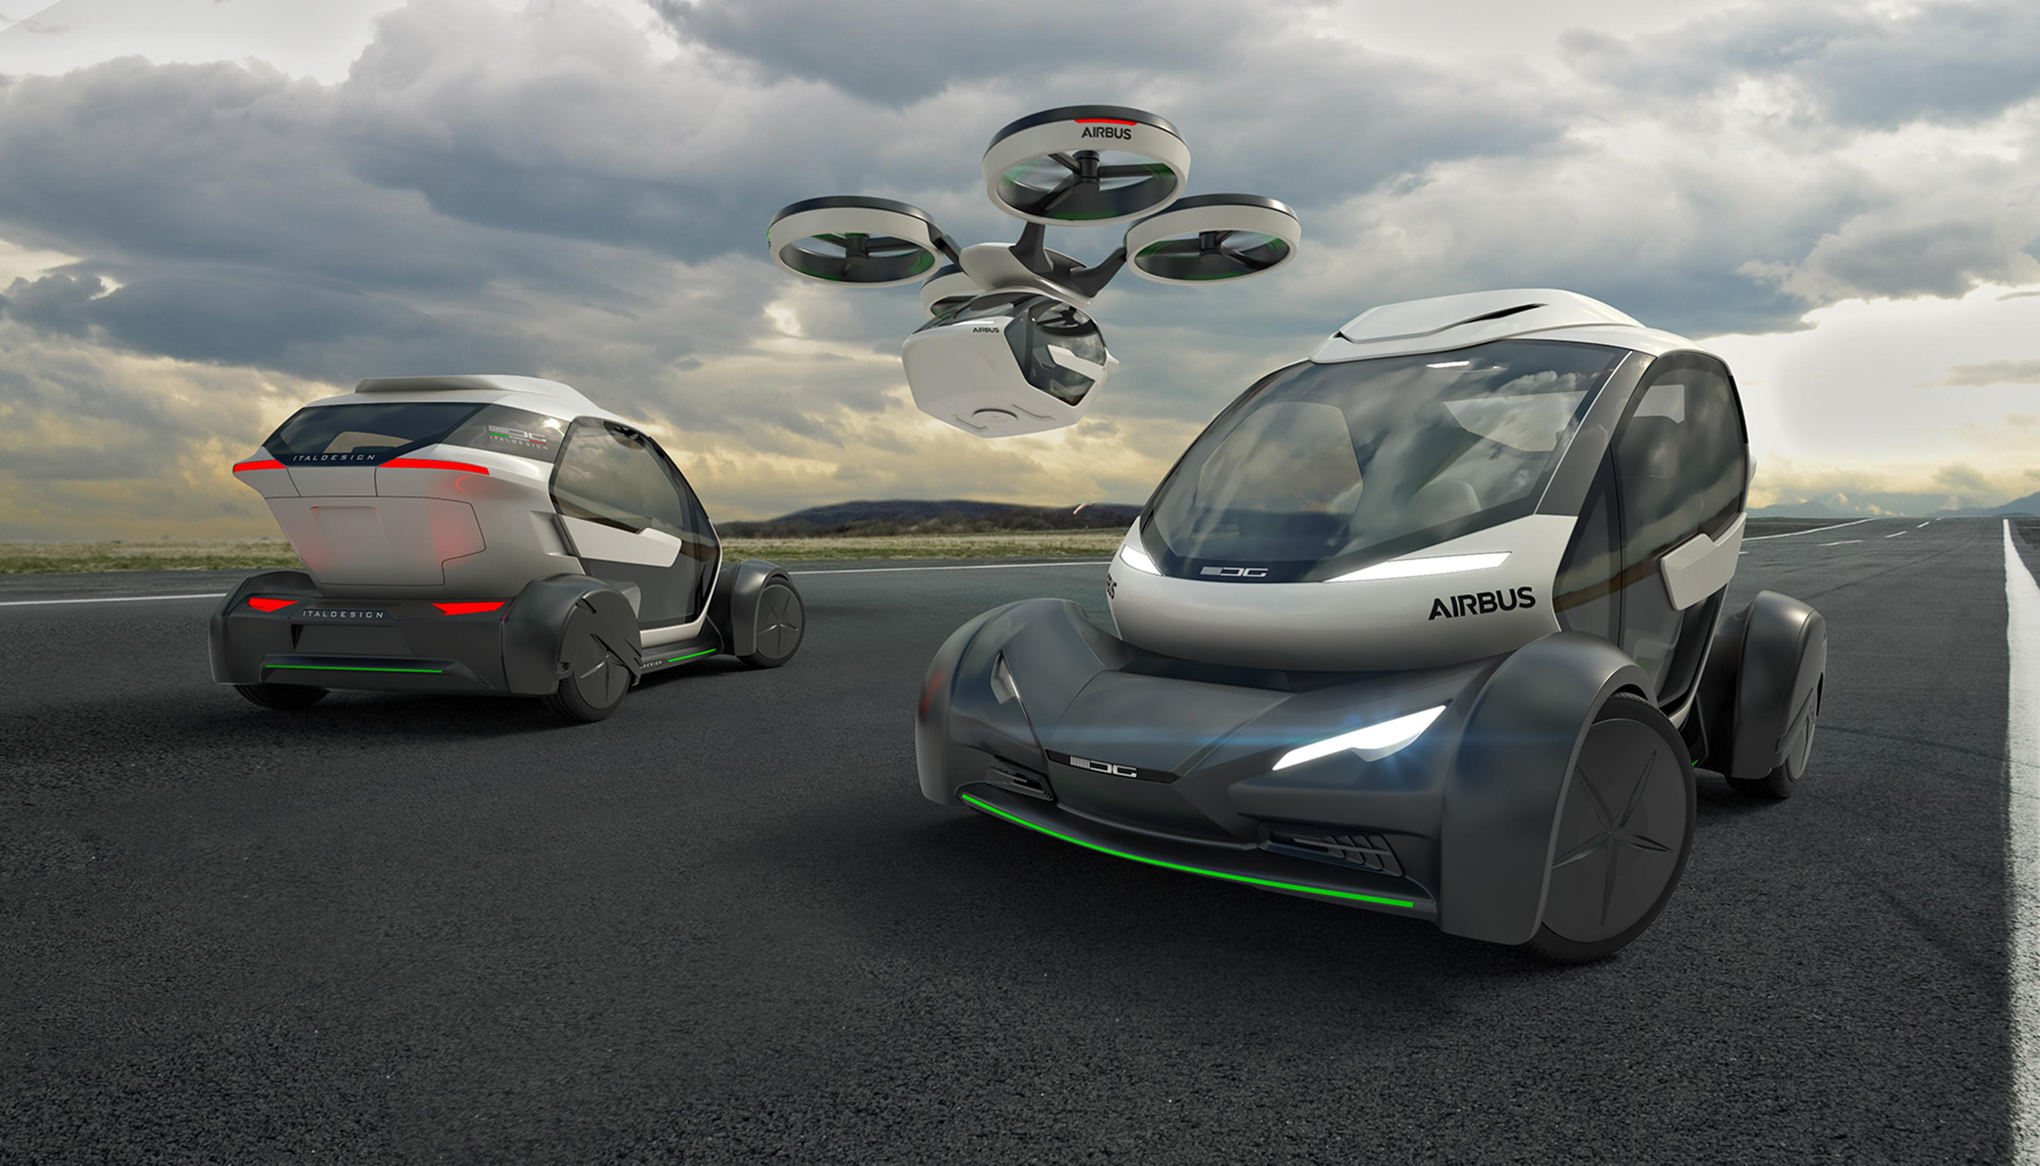 Airbus New Concept Is A Car Drone And Train All In One